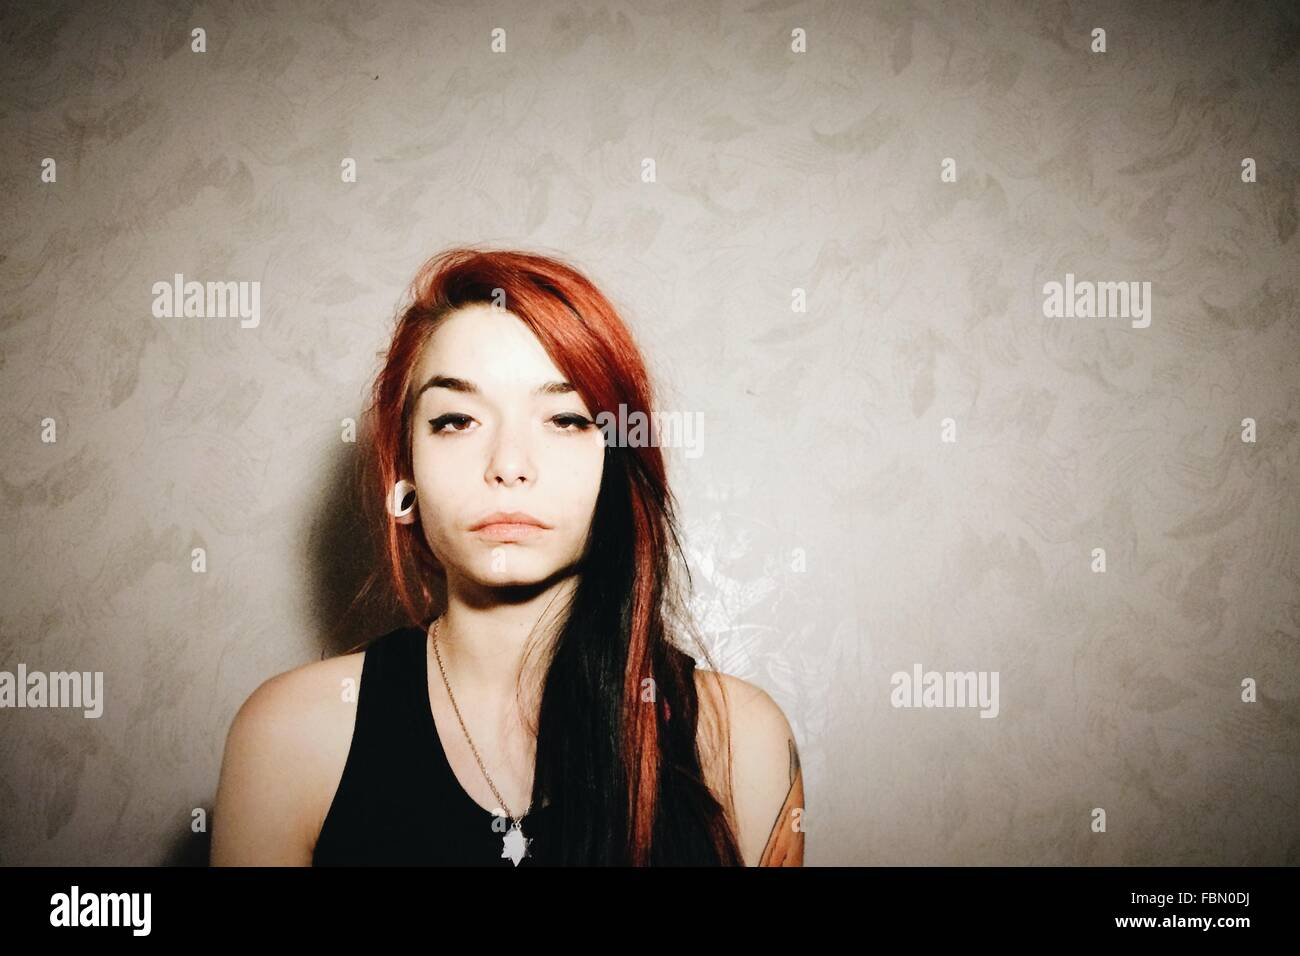 Young Woman Standing Against Wall - Stock Image